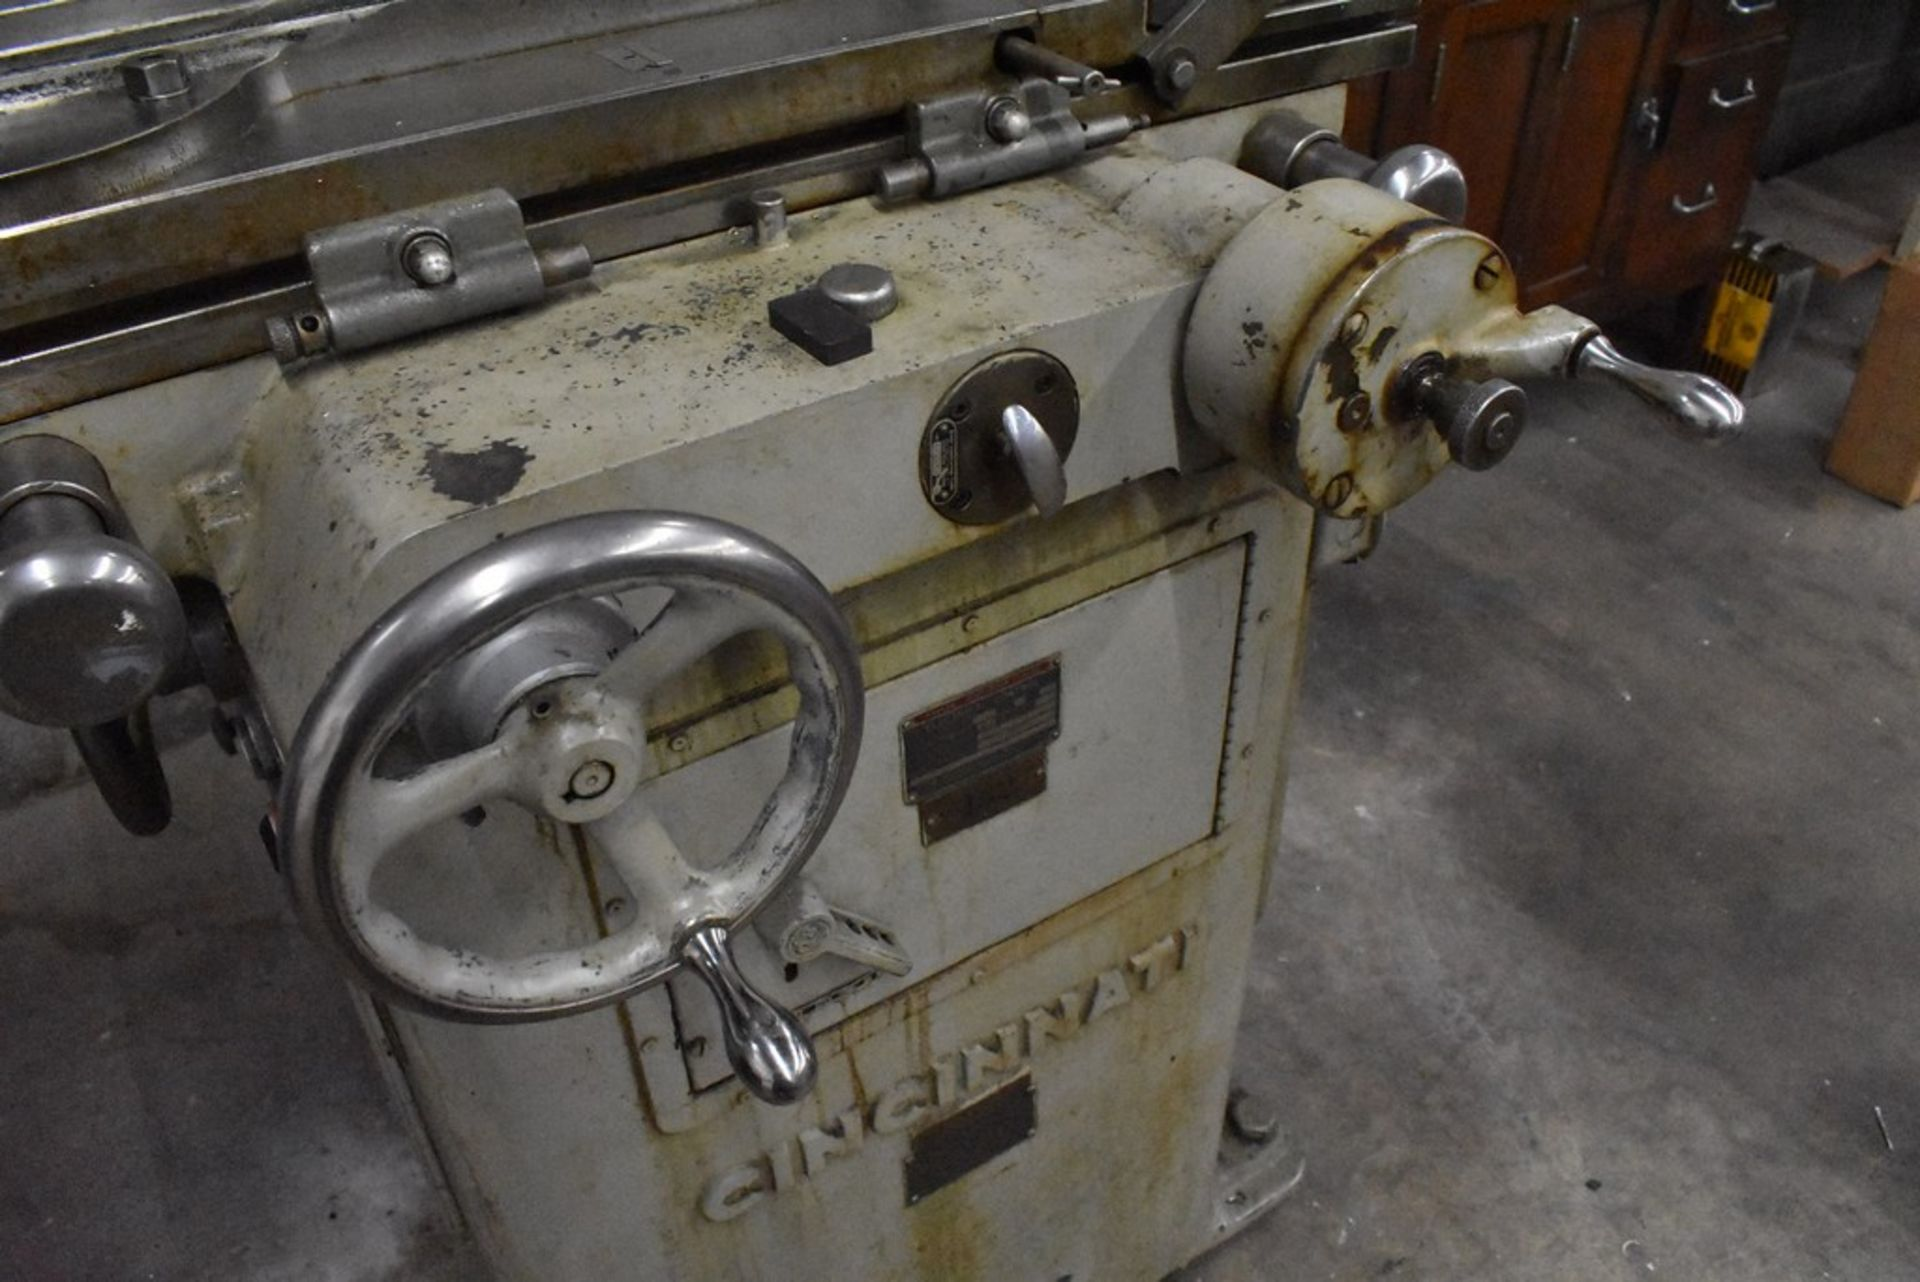 CINCINNATI NO. 2 TOOL AND CUTTER GRINDER, S/N 1D2T1Z-771, WITH MOTORIZED WORK HEAD - Image 14 of 14